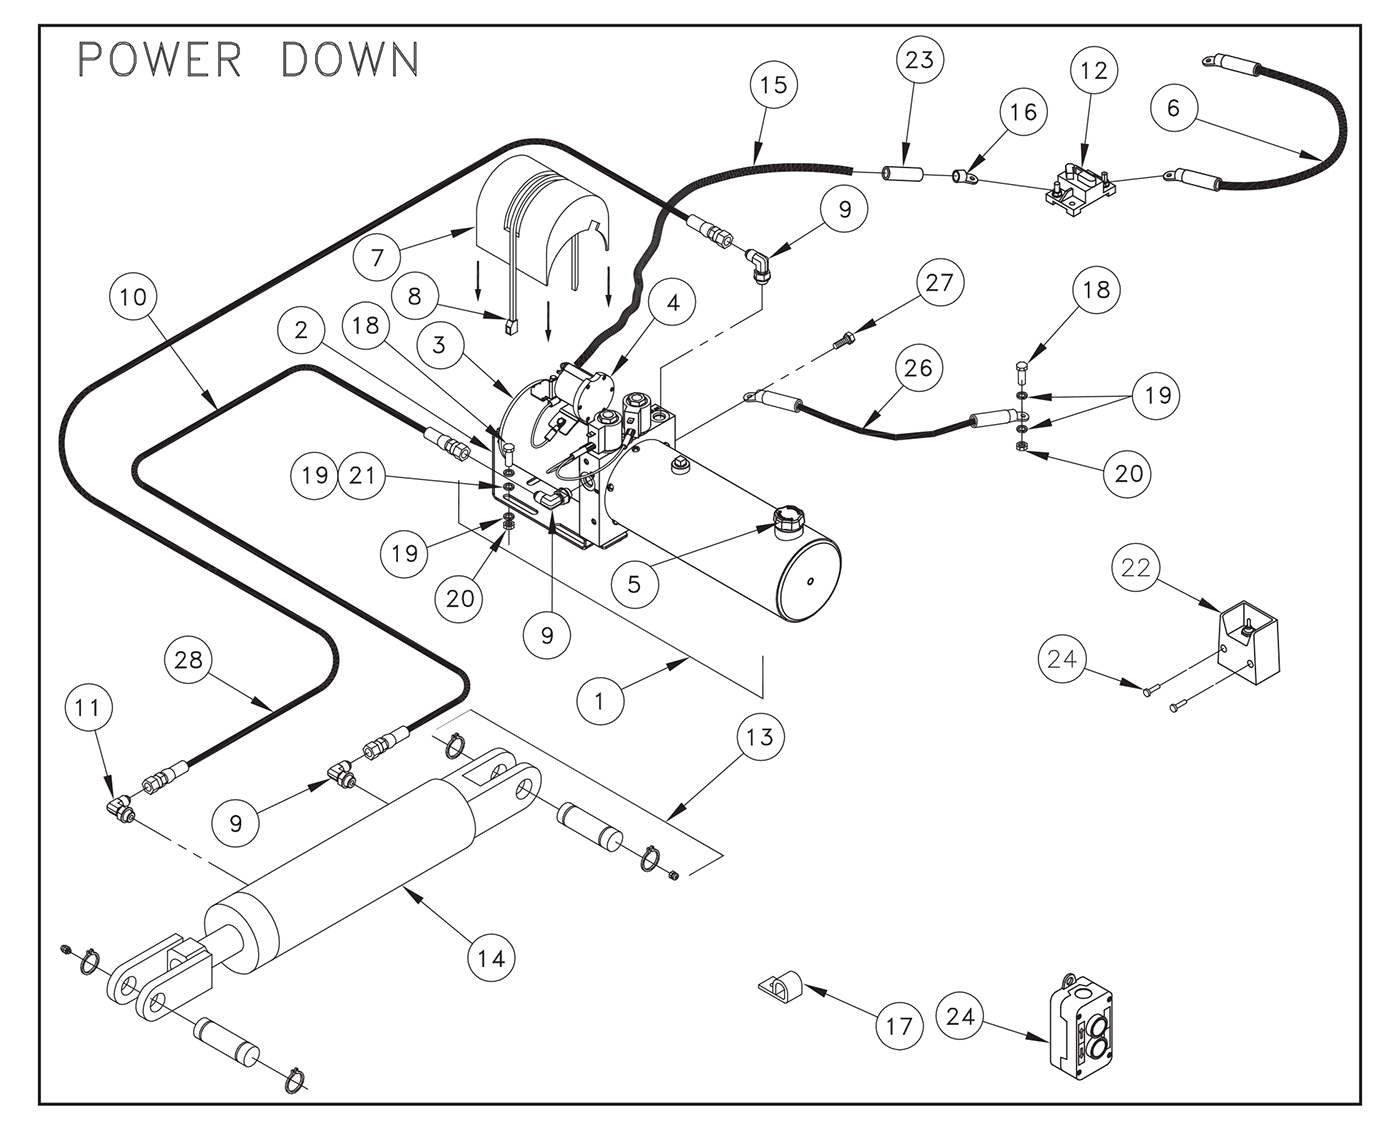 ST22 Electric Control Pump Assembly (Power Down) Diagram